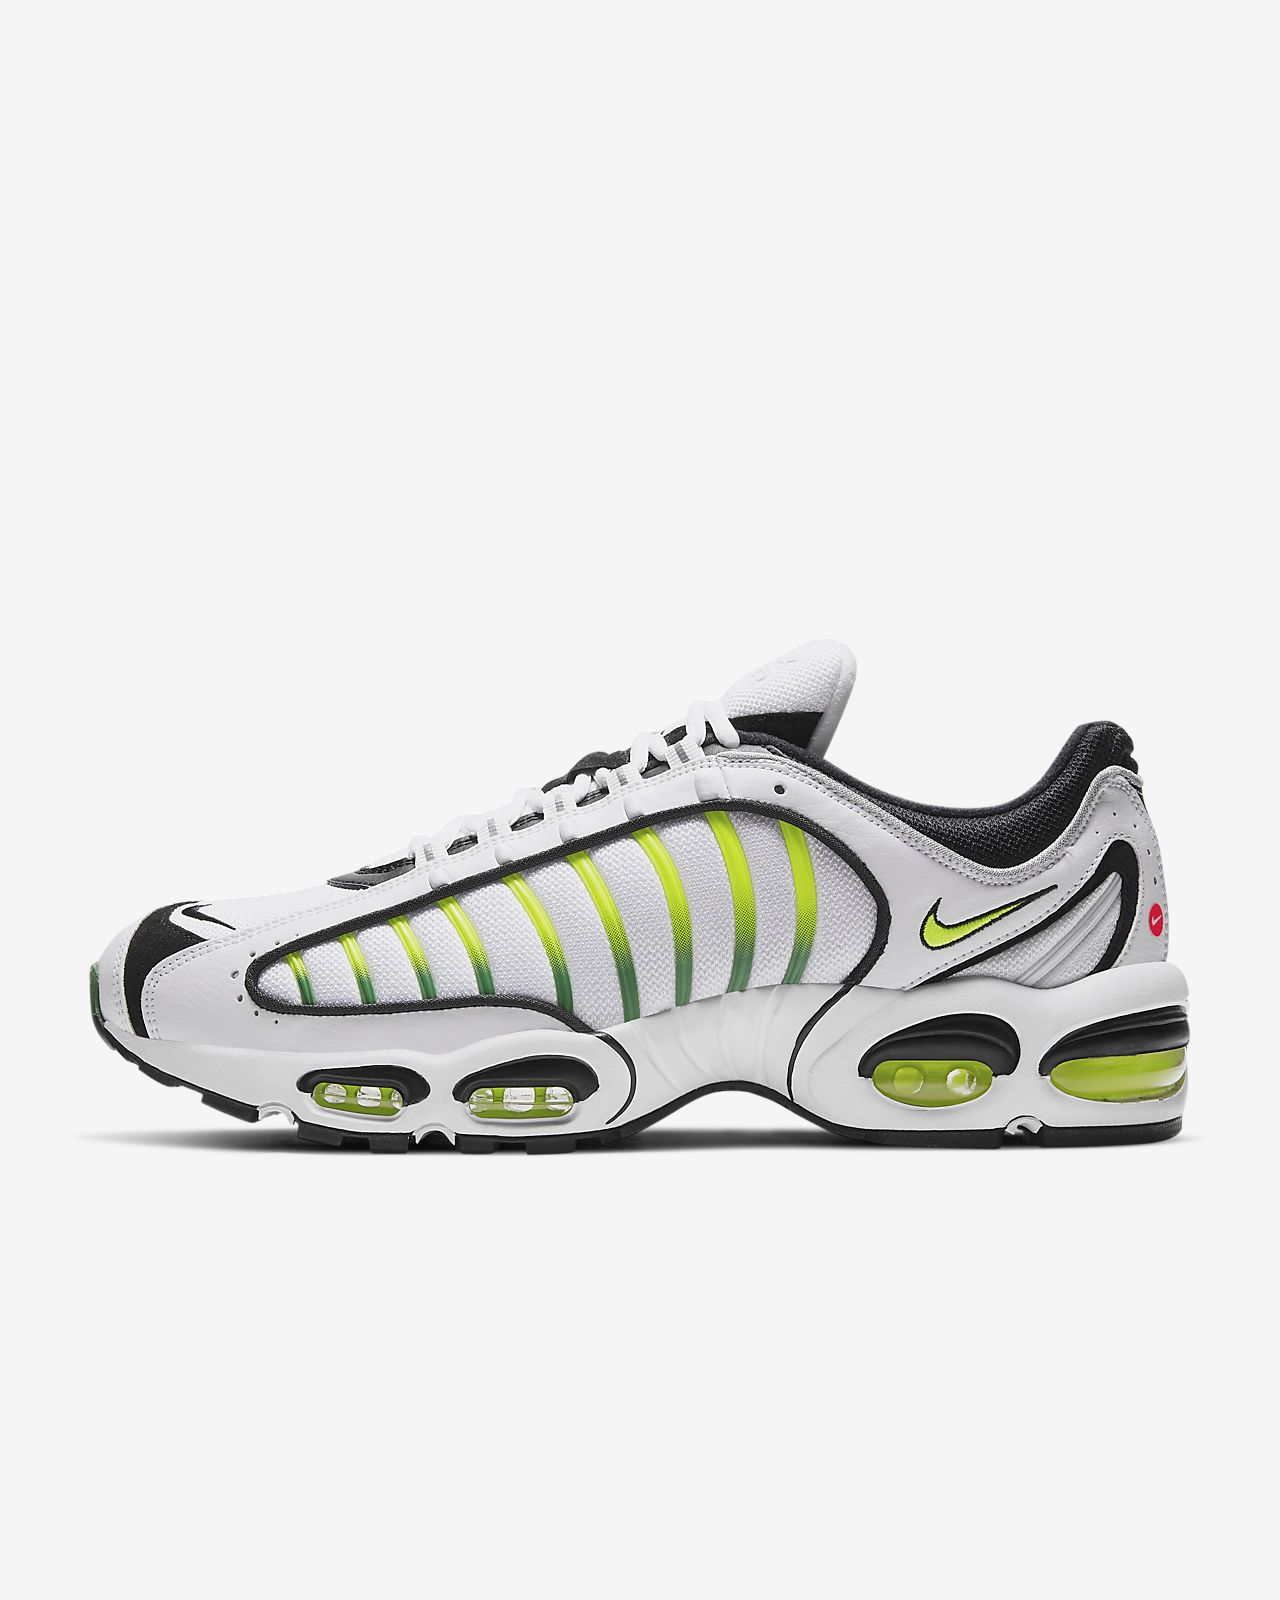 official photos 6938f 38a9d Nike Air Max Tailwind IV Men's Shoe